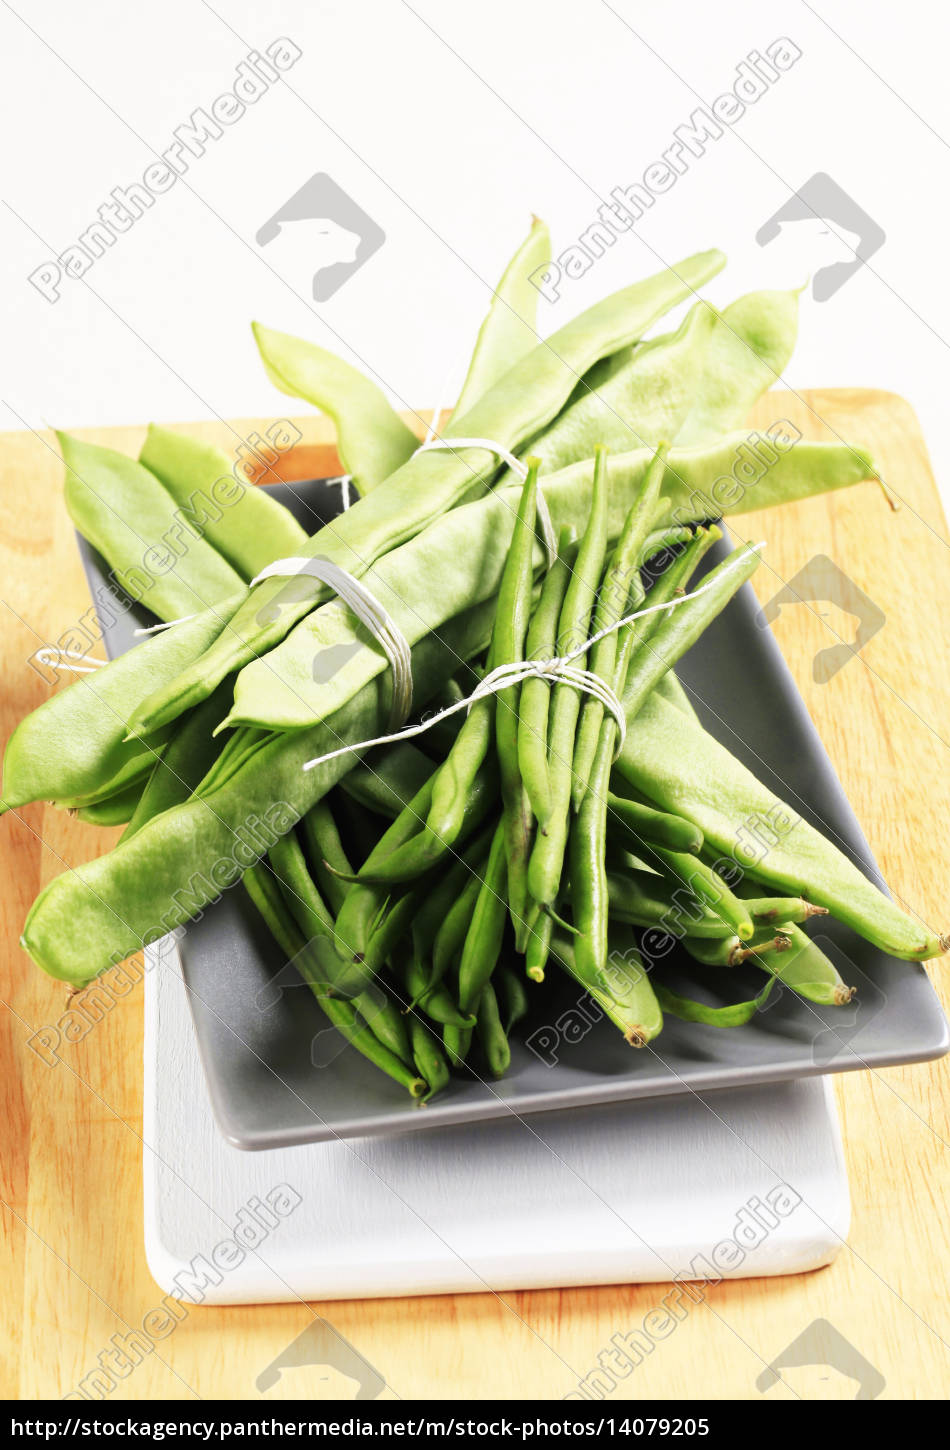 green, beans, and, snow, peas - 14079205